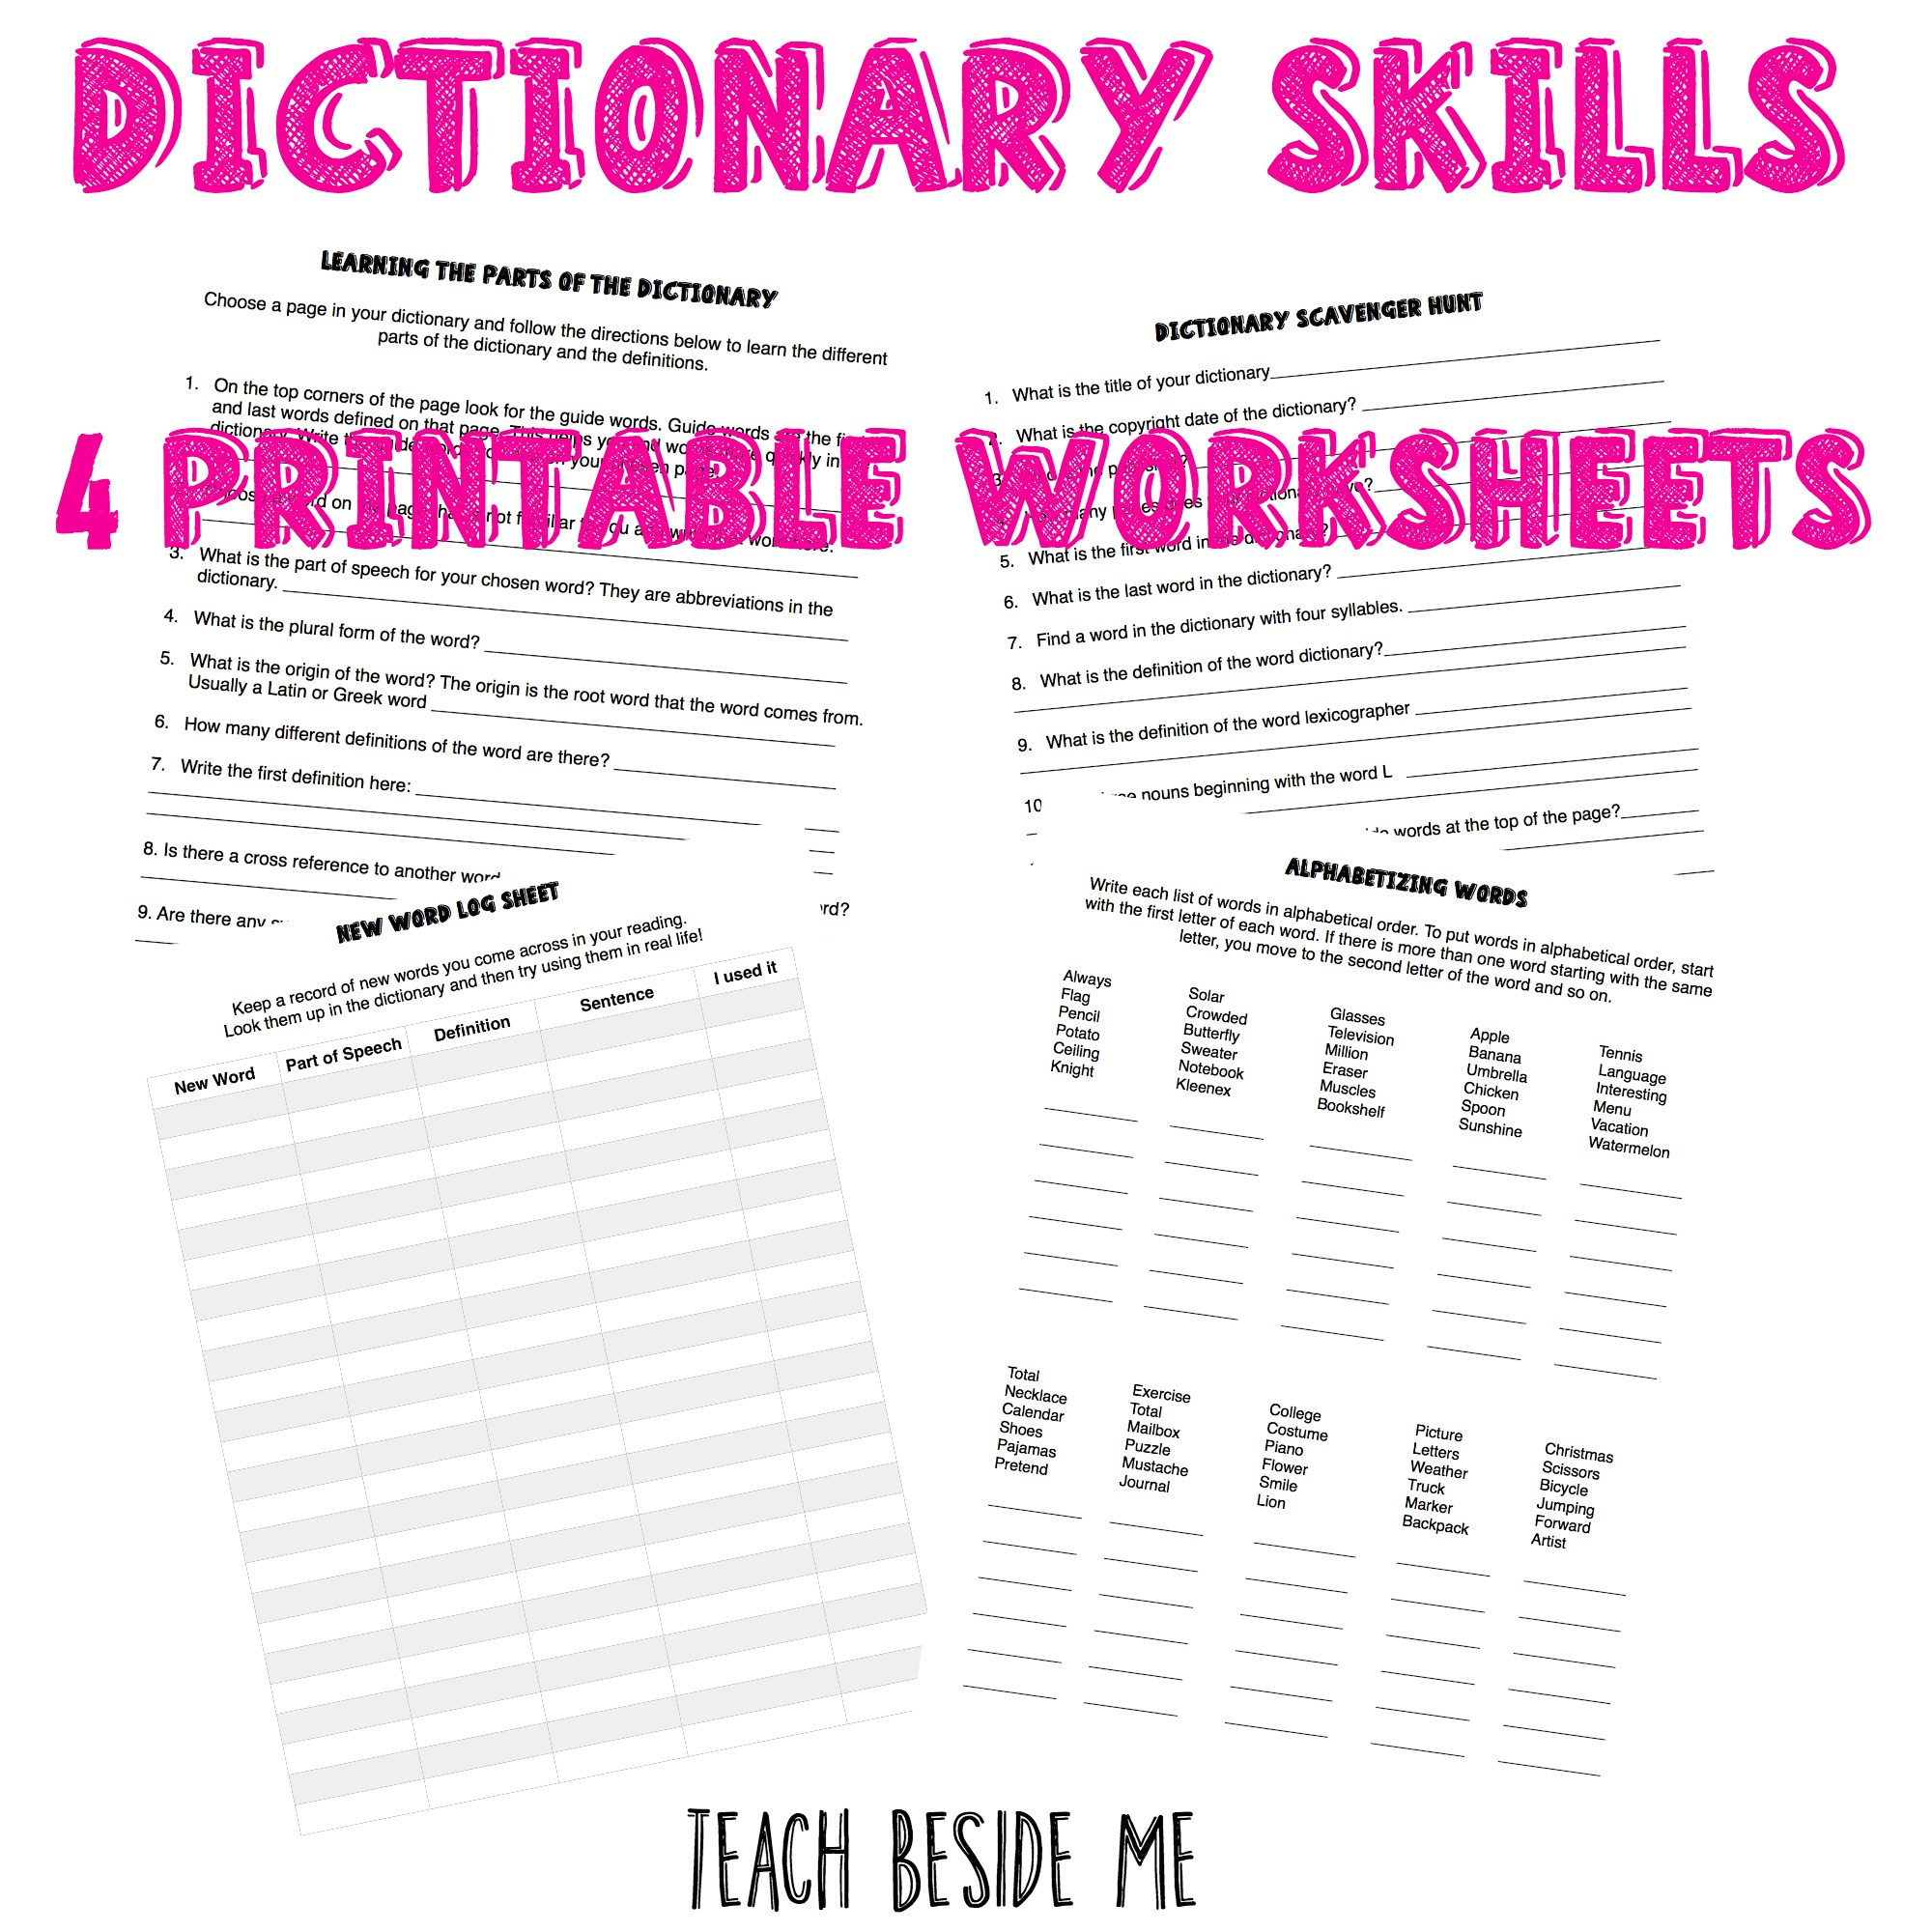 Worksheets Dictionary Worksheets dictionary skills worksheets teach beside me worksheets